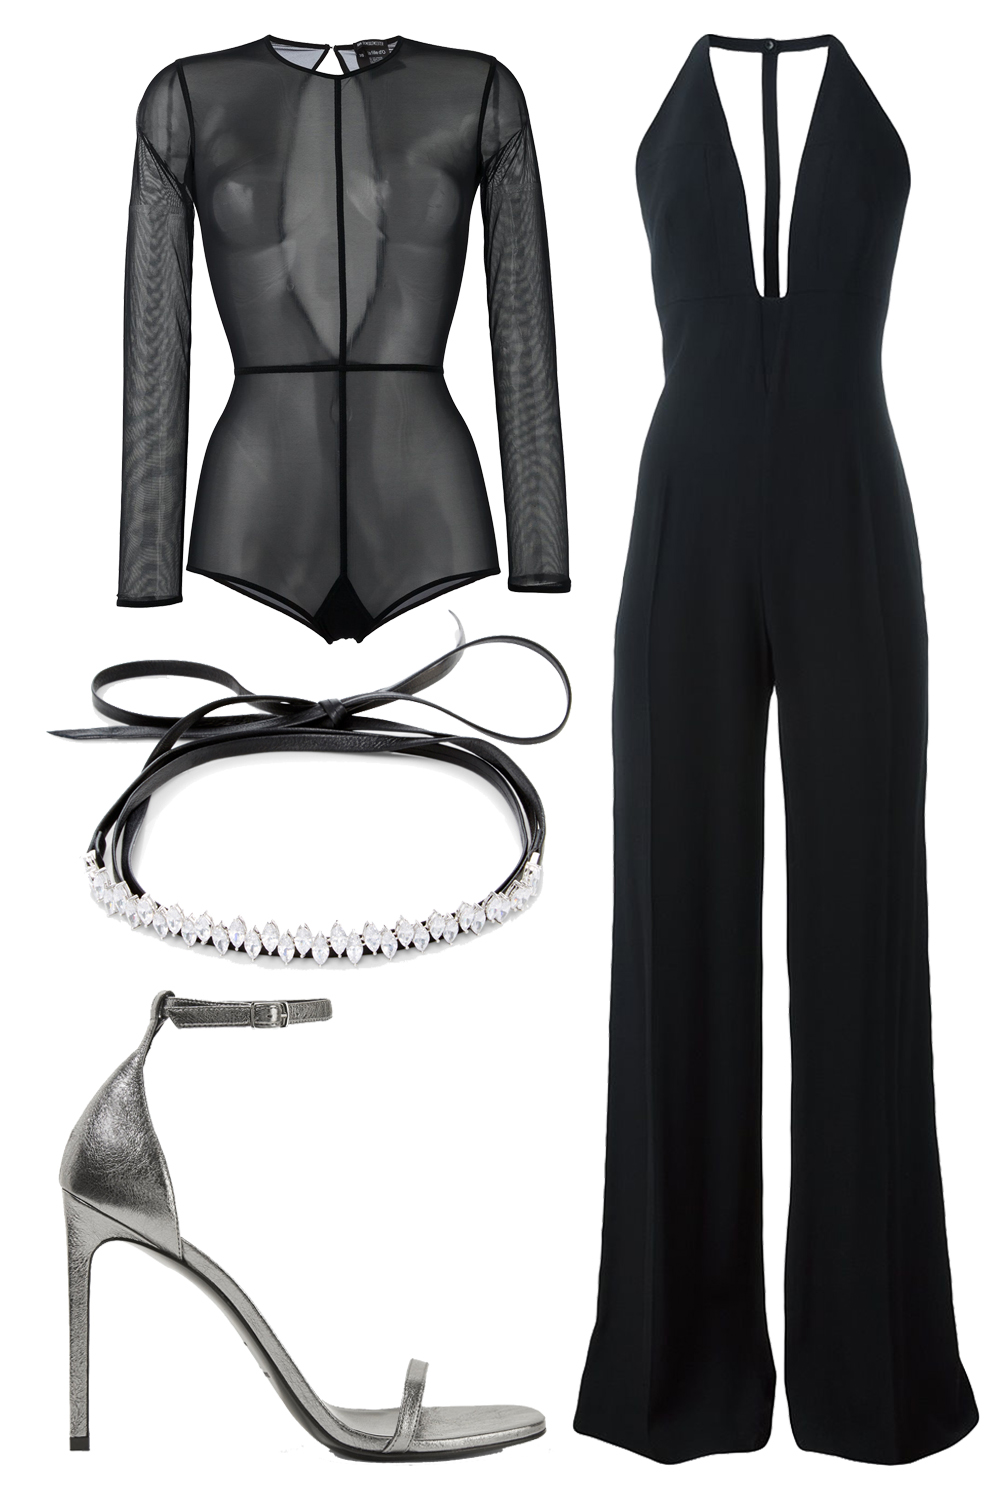 what-to-wear-for-a-winter-wedding-guest-outfit-black-top-bodysuit-sheer-layer-black-jumpsuit-gray-shoe-sandalh-dinner.jpg